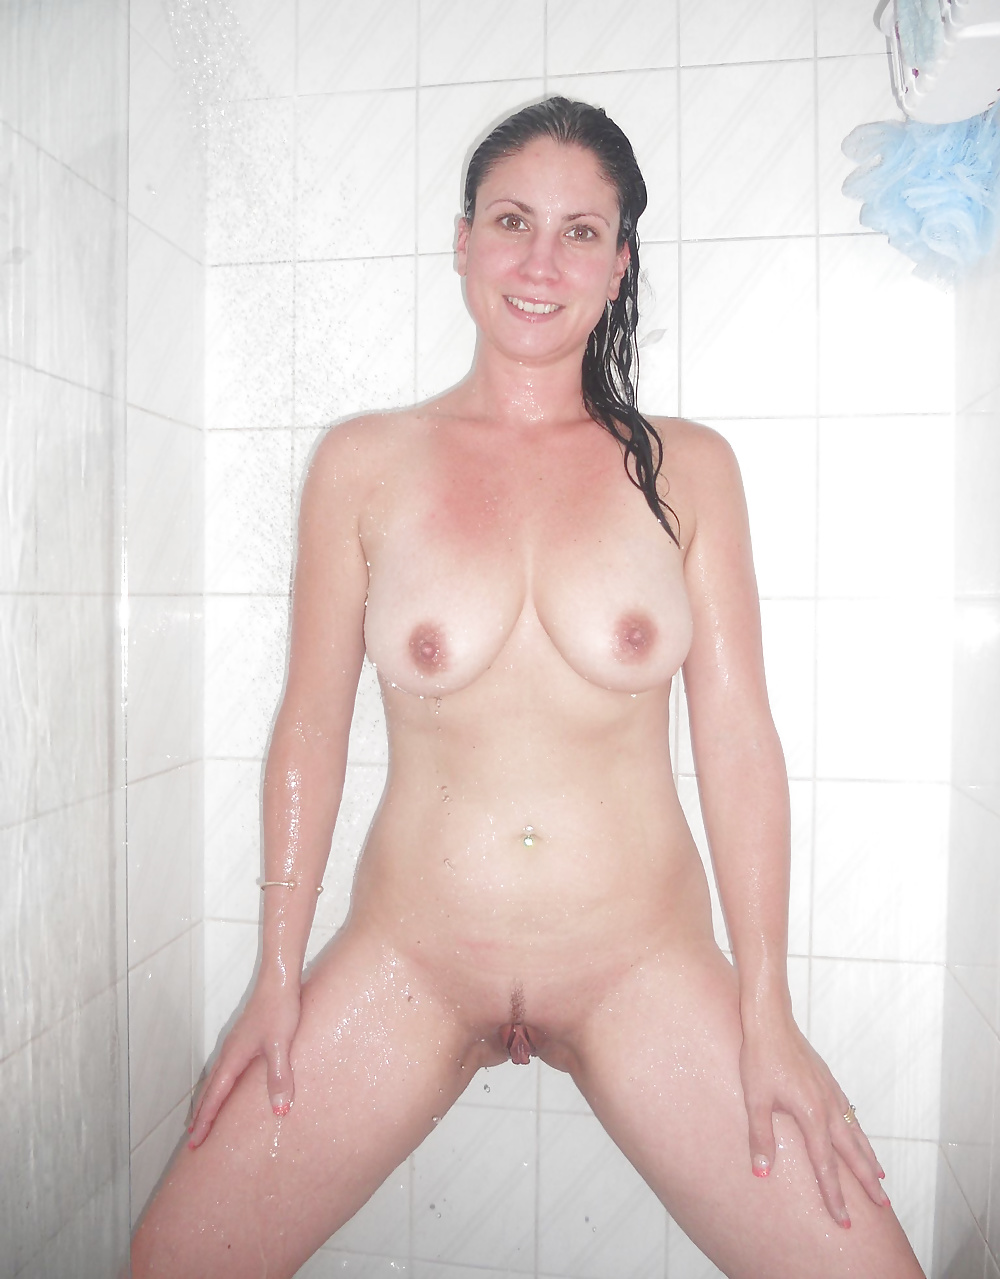 cougar du 22 en photo sexe rencontres matures